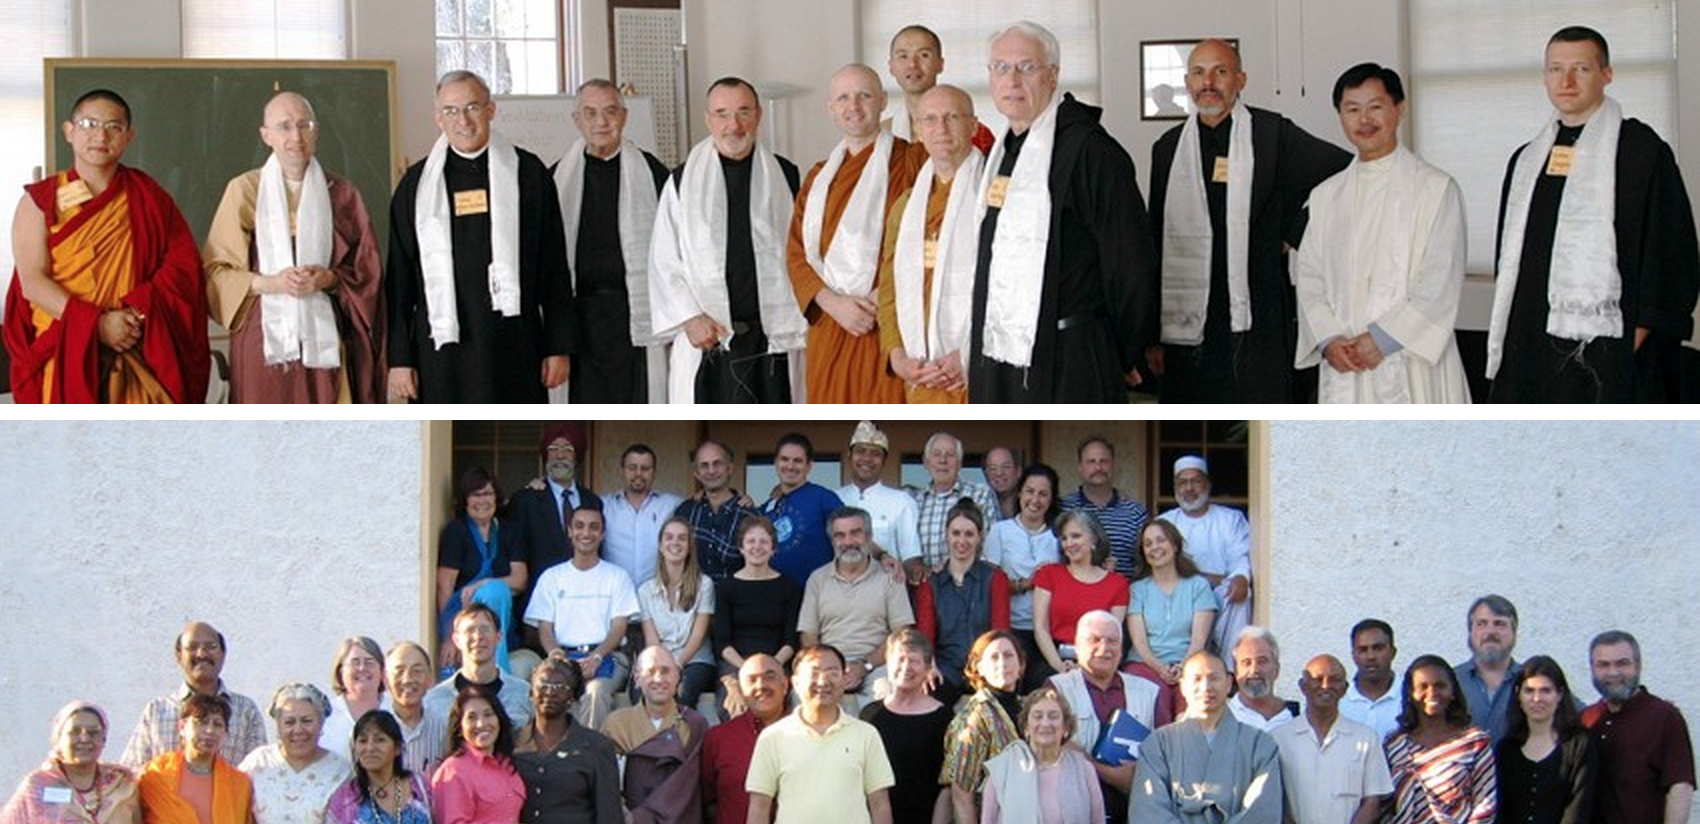 A United Religions Initiative interfaith gathering at the City of Ten Thousand Buddhas.